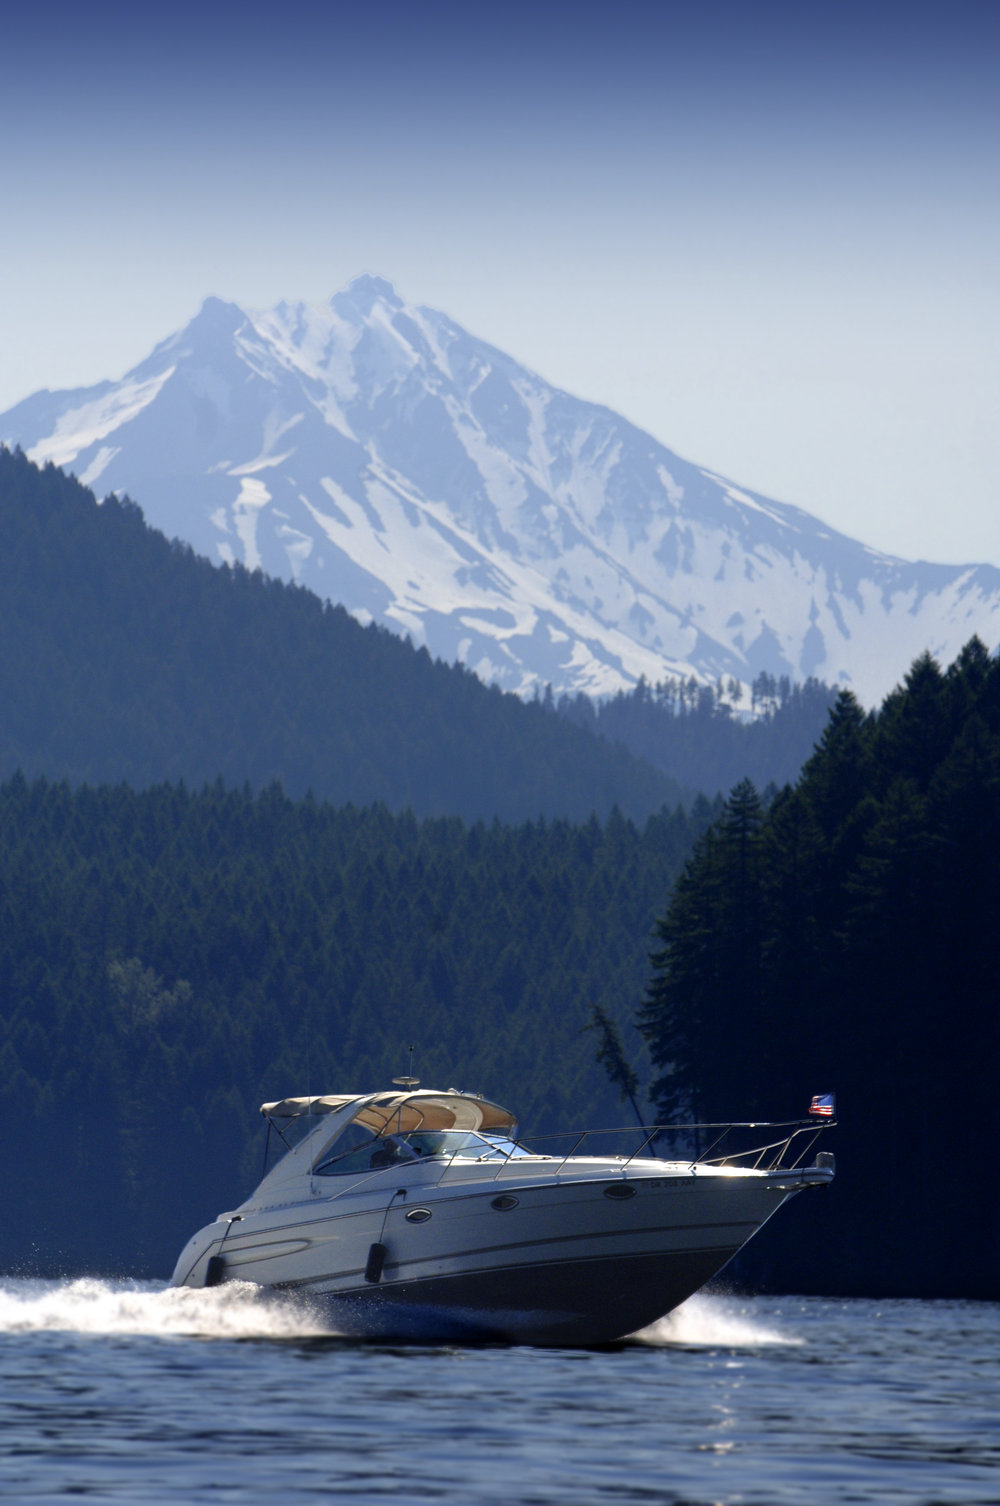 Boat & Mt. Jefferson.jpg